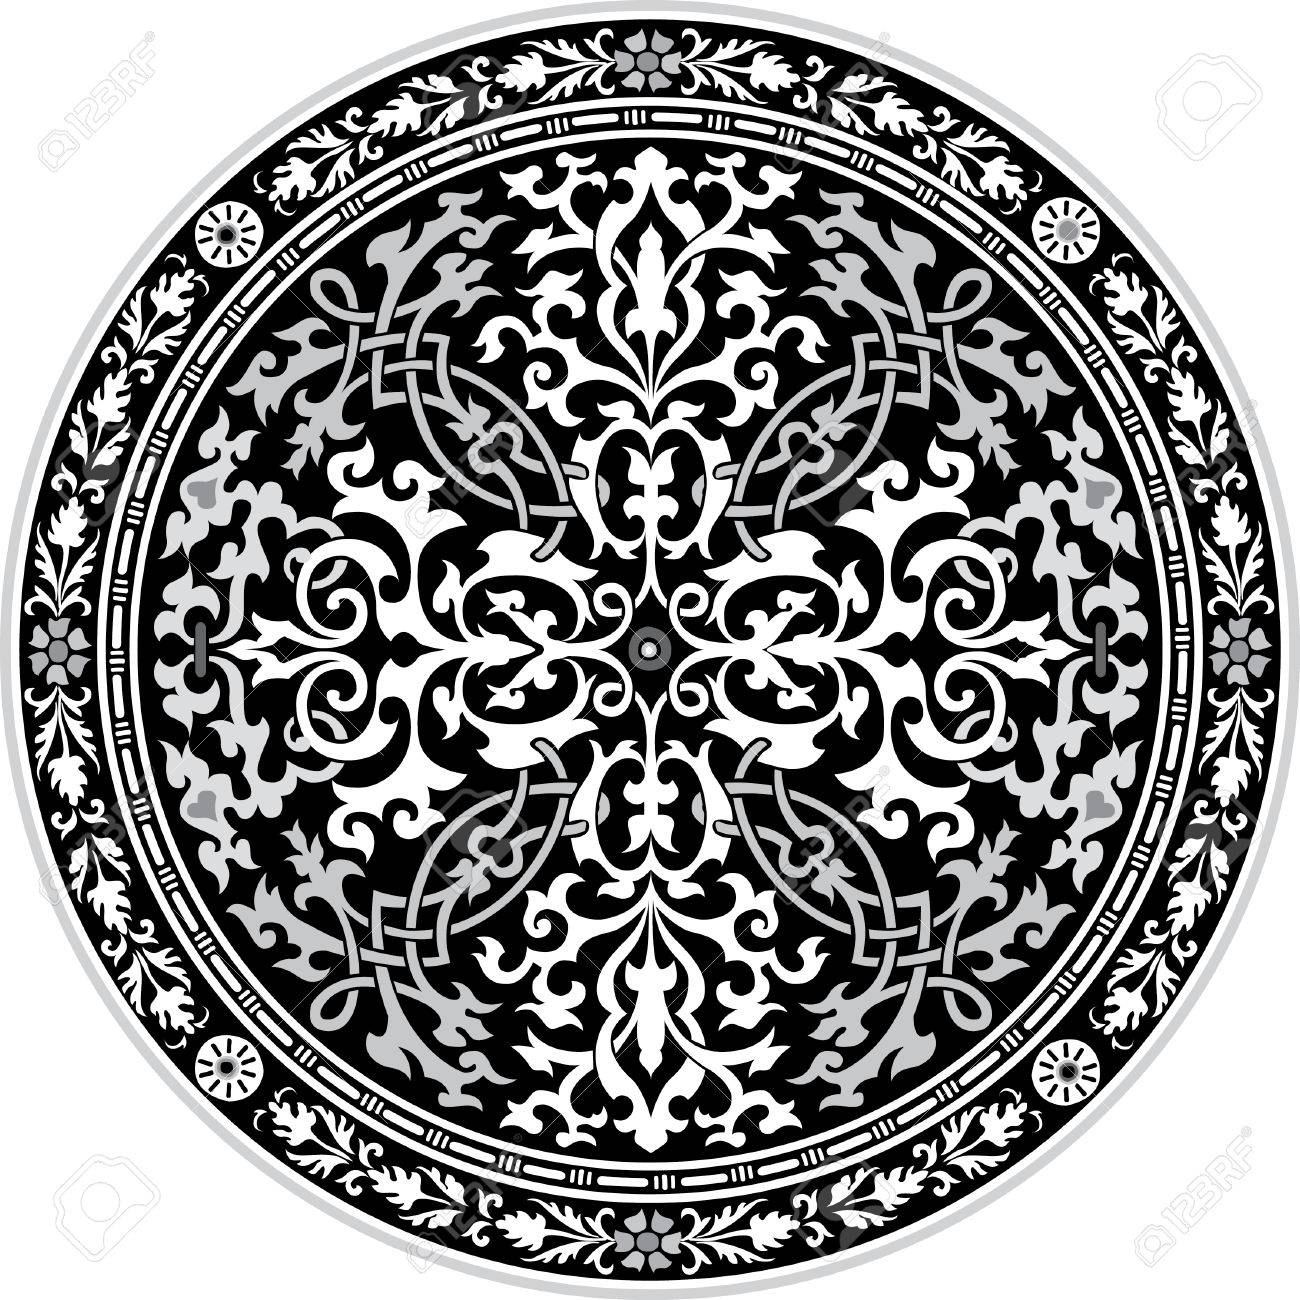 Arabesque ornate with flowers decoration in editable vectors, Grayscale Stock Vector - 24003549